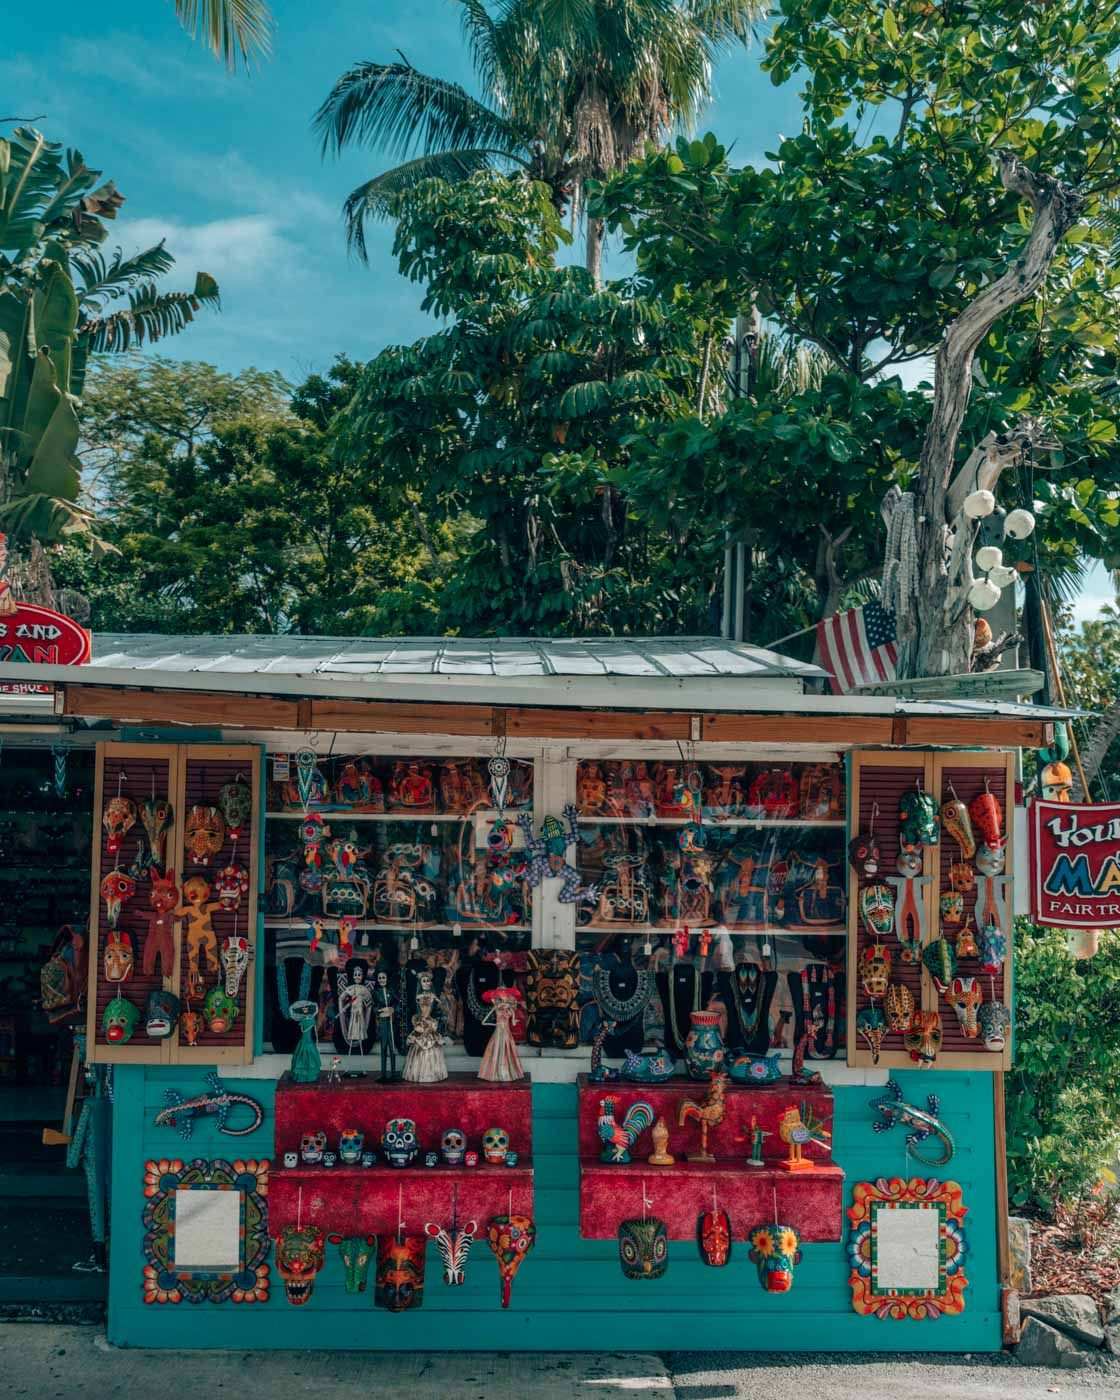 Things to do, see and eat in Key West Florida. #Keywest #Florida #weekendguide